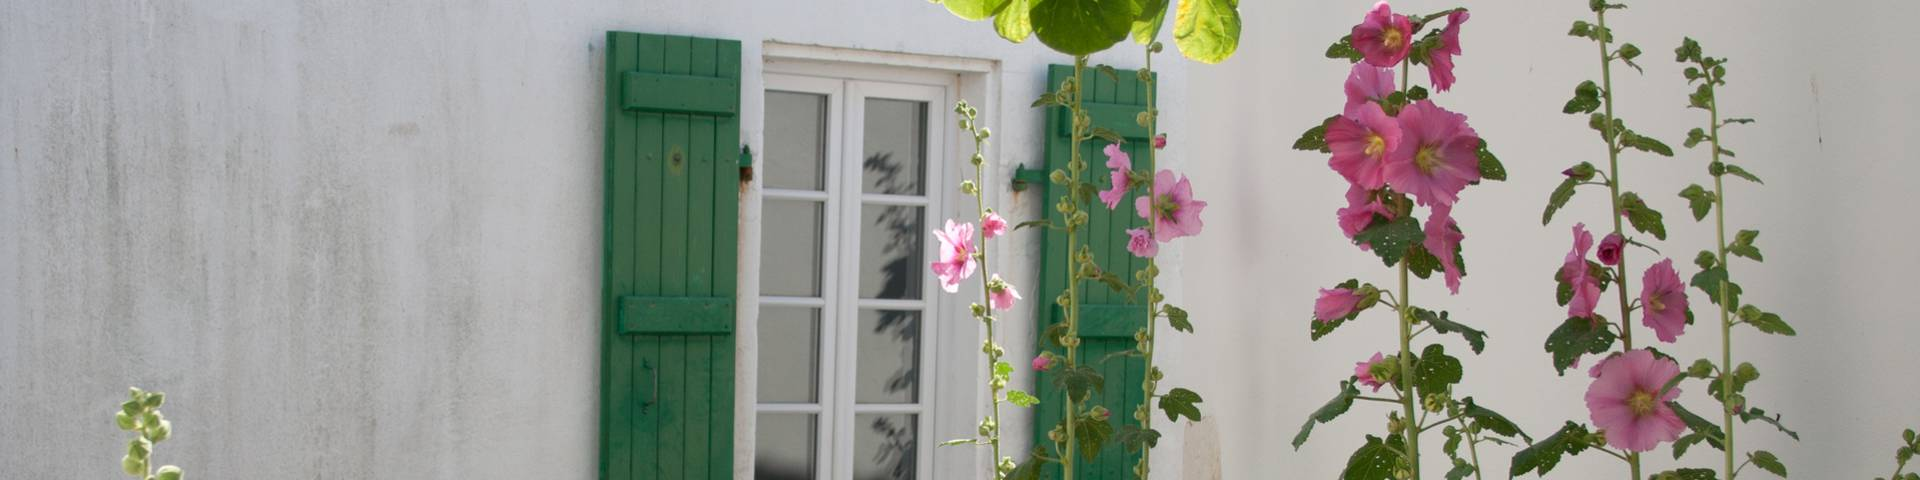 Accommodation rentals in La Couarde-sur-Mer